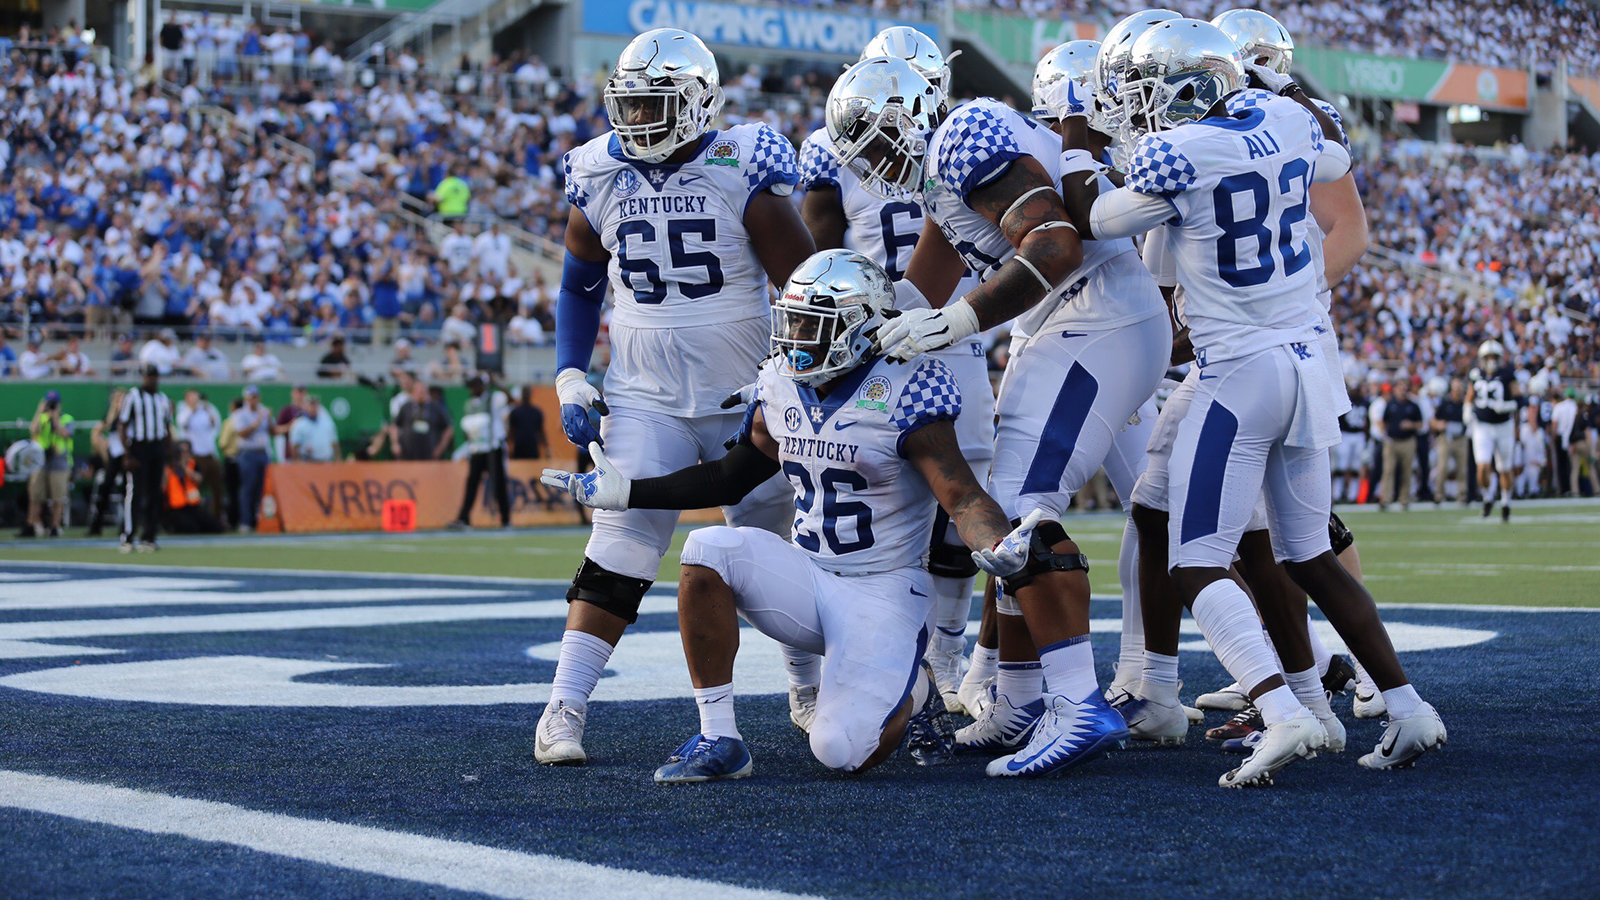 Picture-Perfect Ending: Kentucky Tops Penn State in VRBO ...